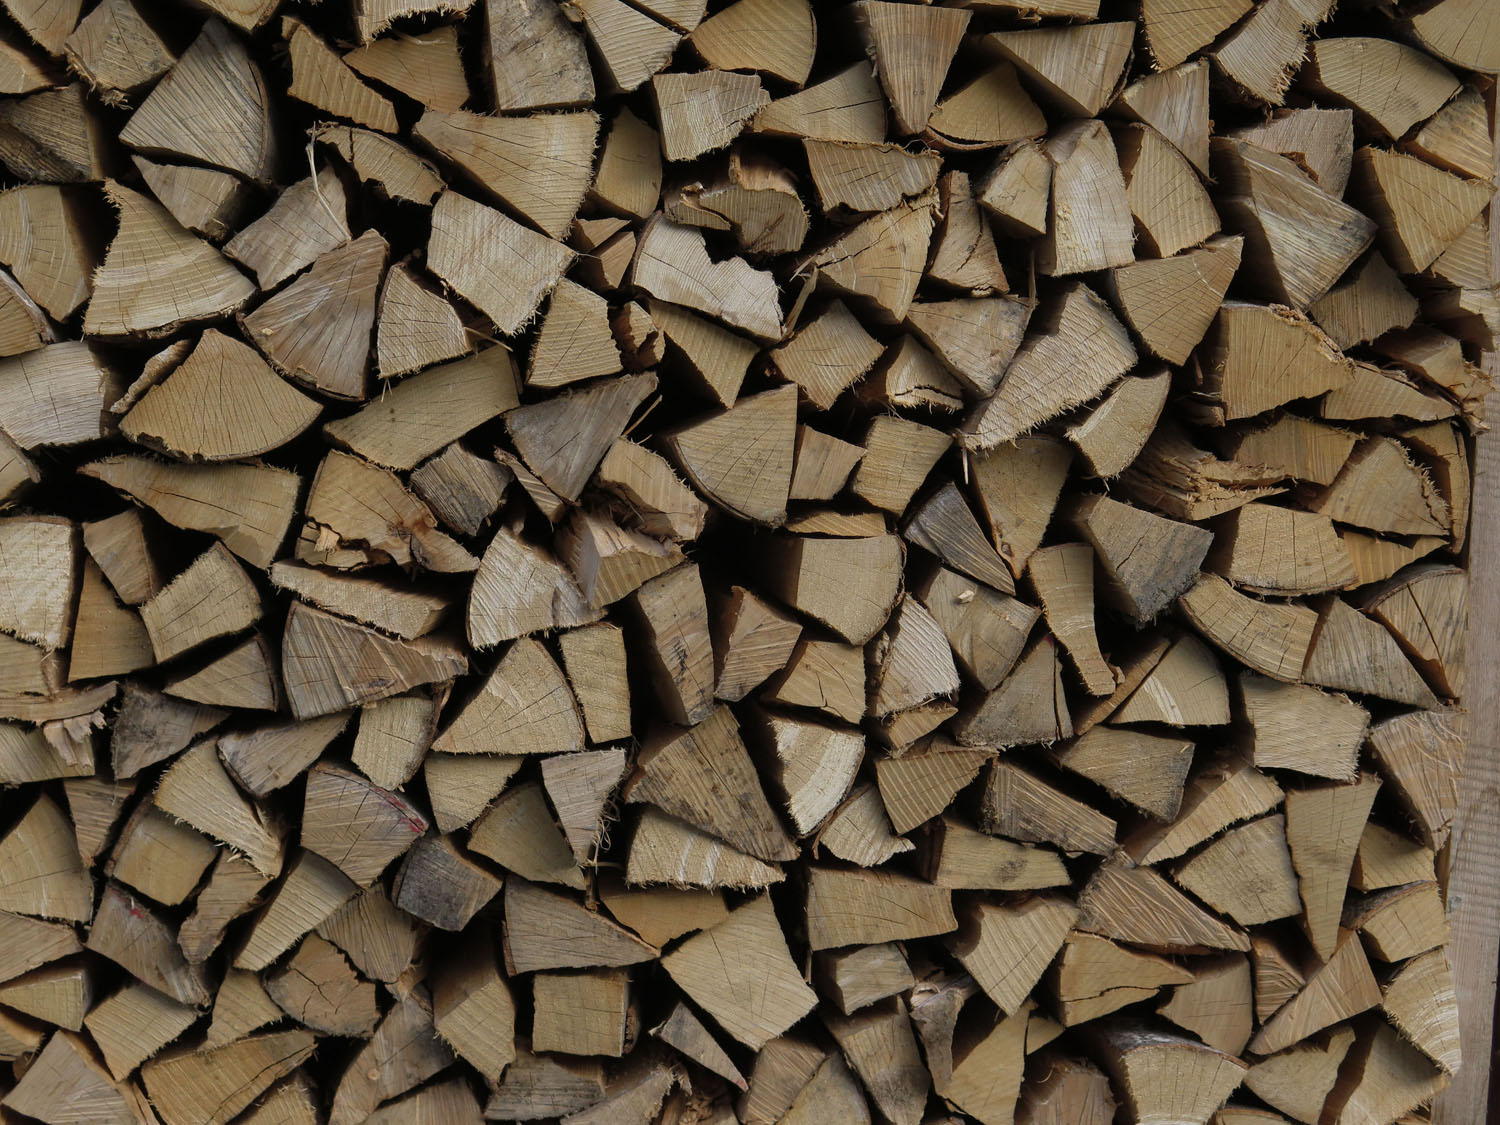 Switzerland-Bernese-Oberland-Murren-Woodpile